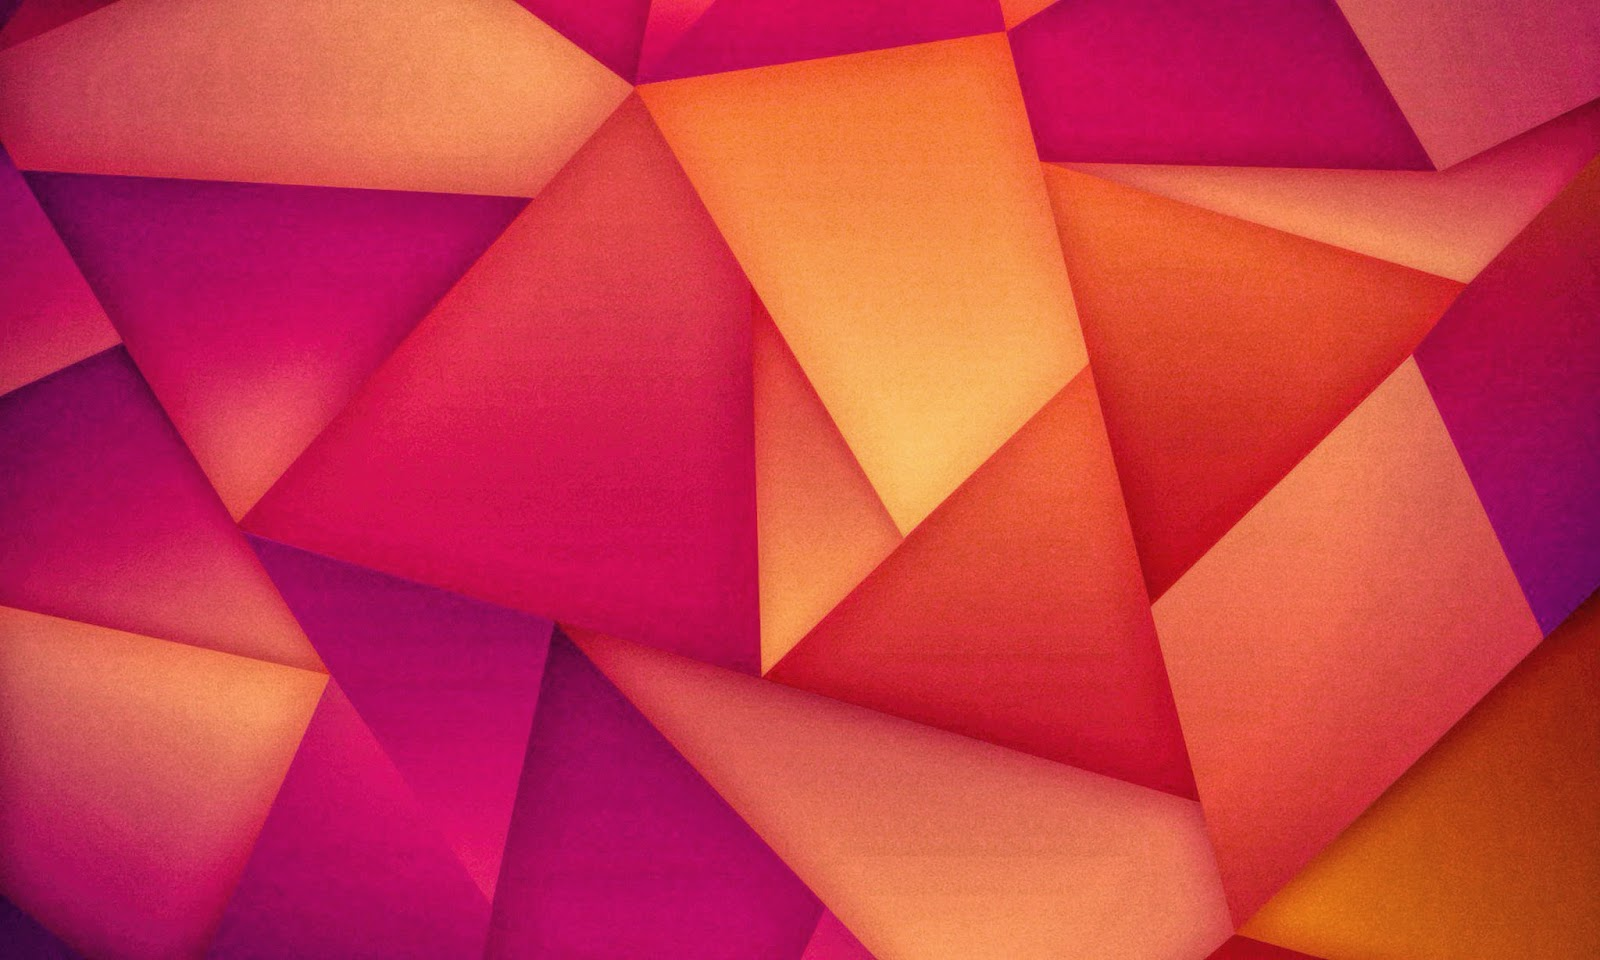 triangle abstract wallpapers - photo #2